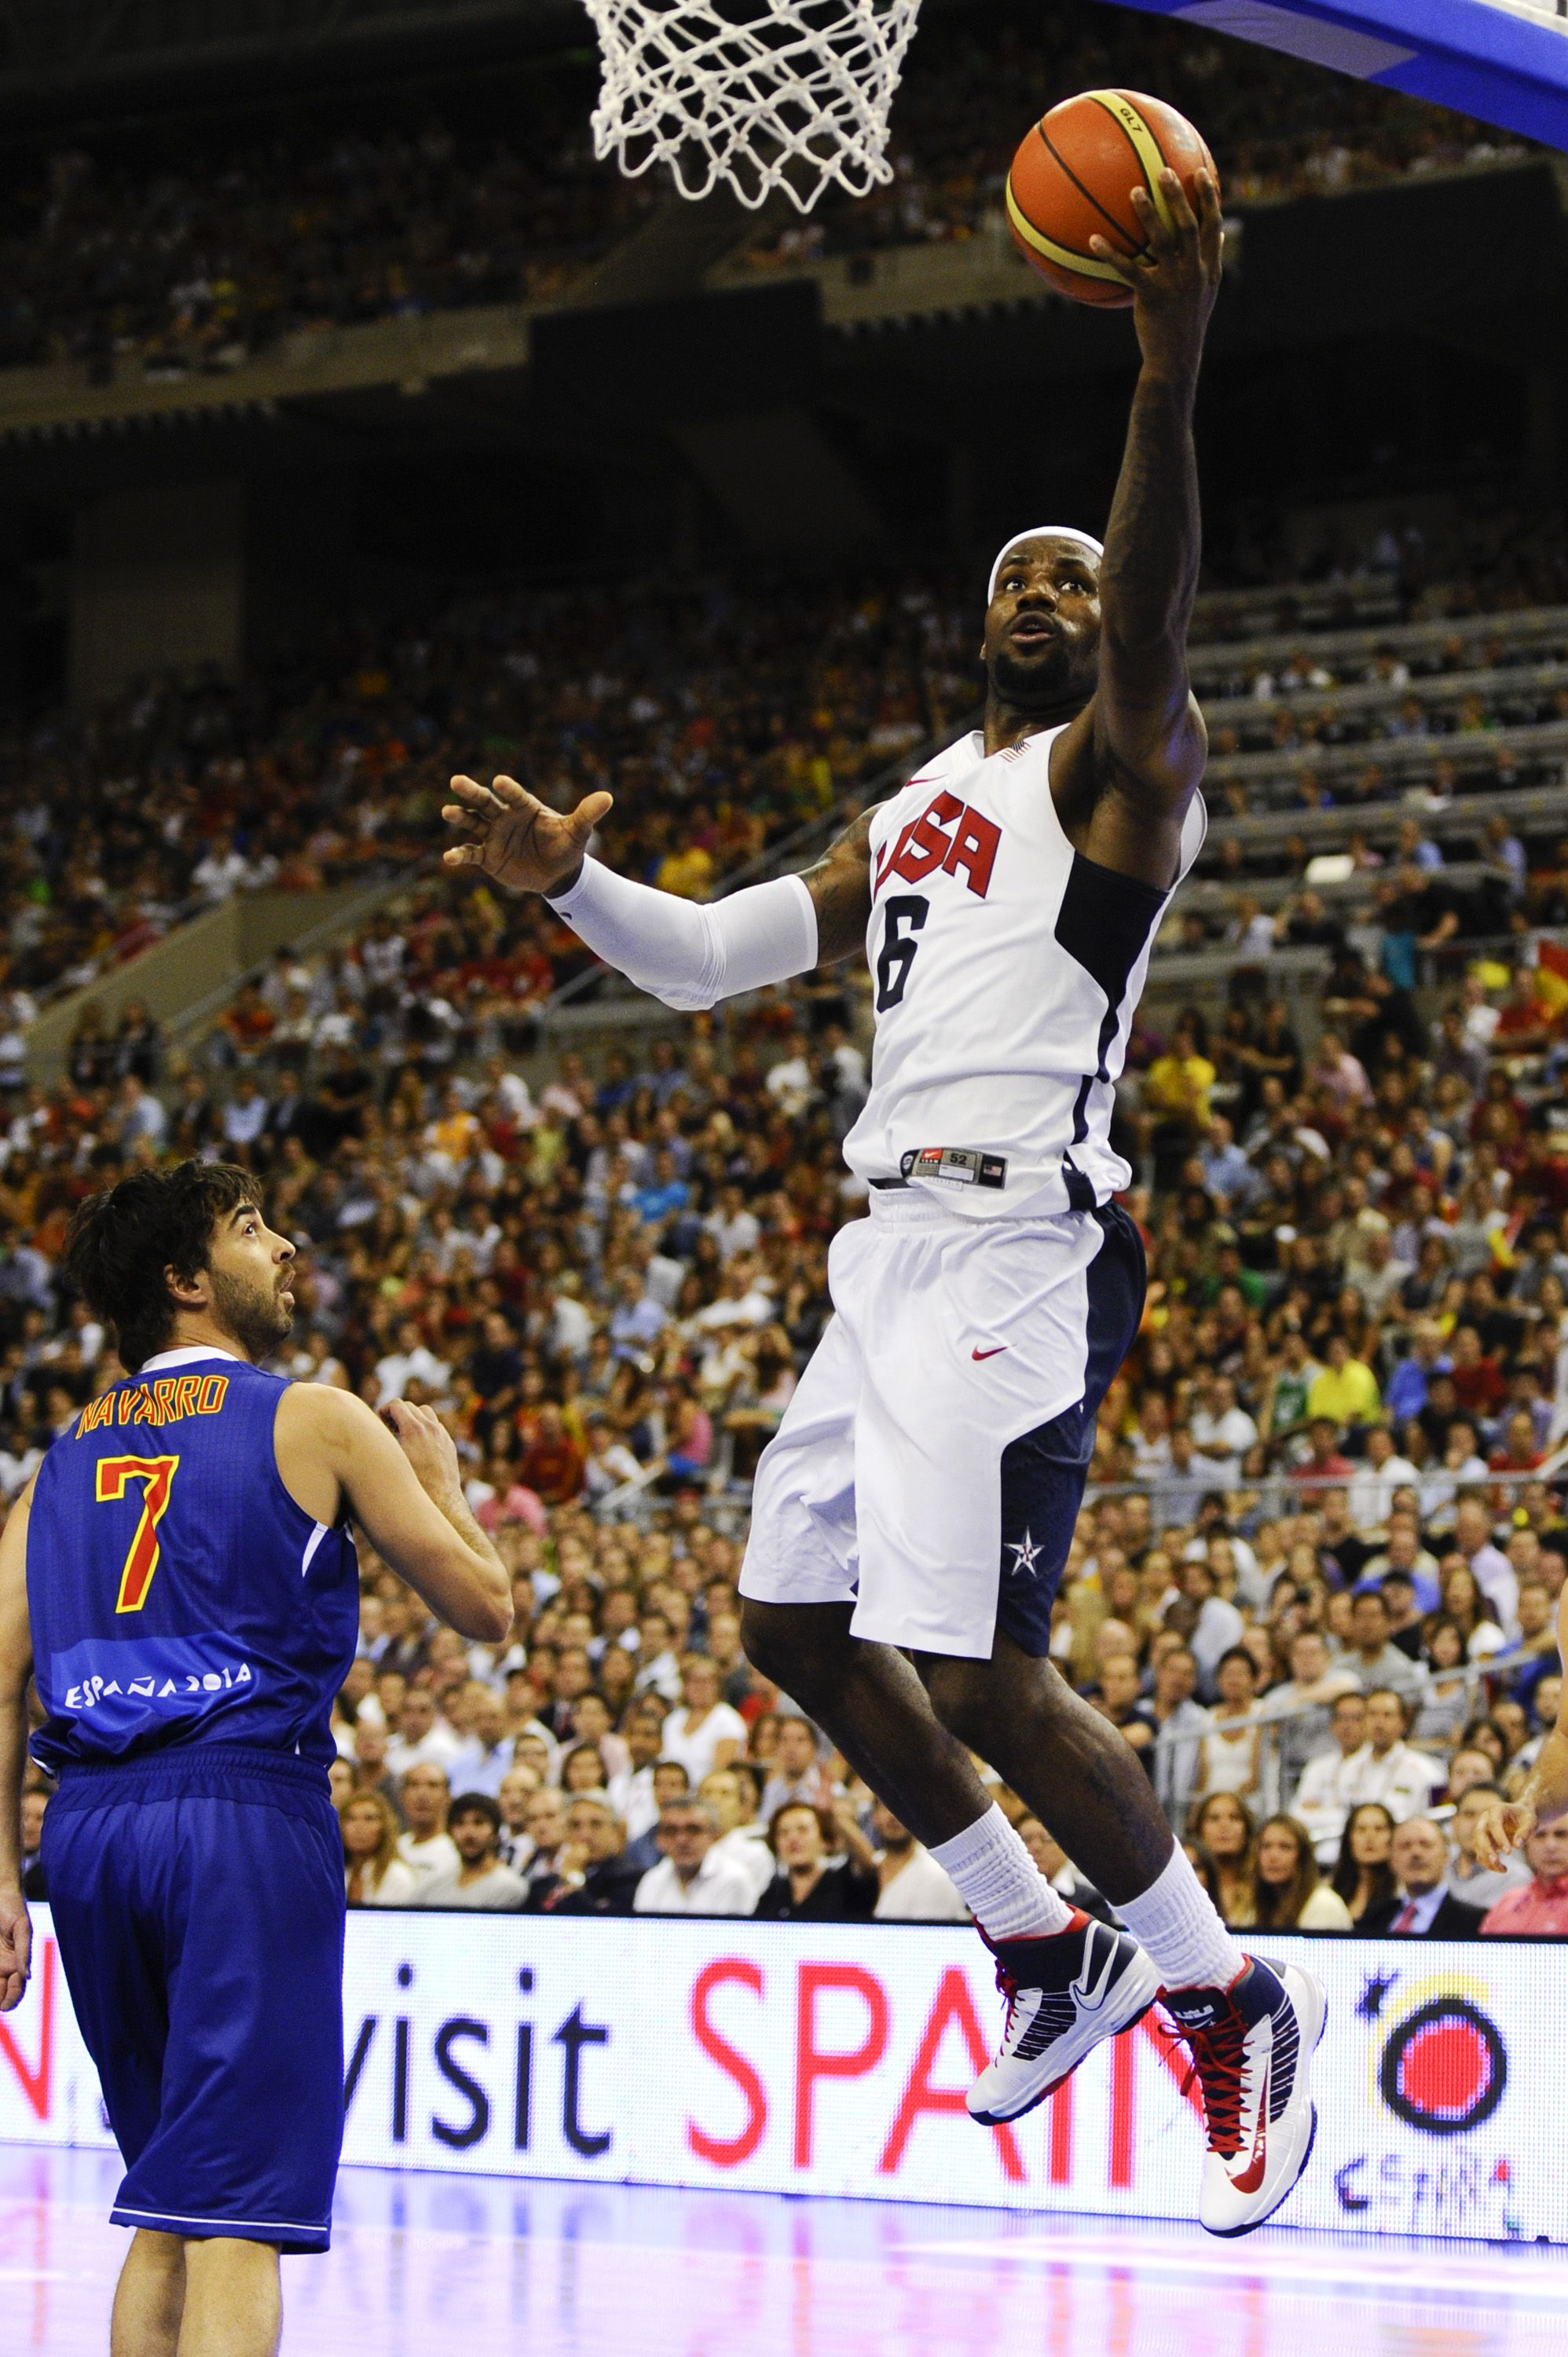 Usa Basketball Lebron James In The Nike Hyperdunk Photo By David Ramos Getty Images